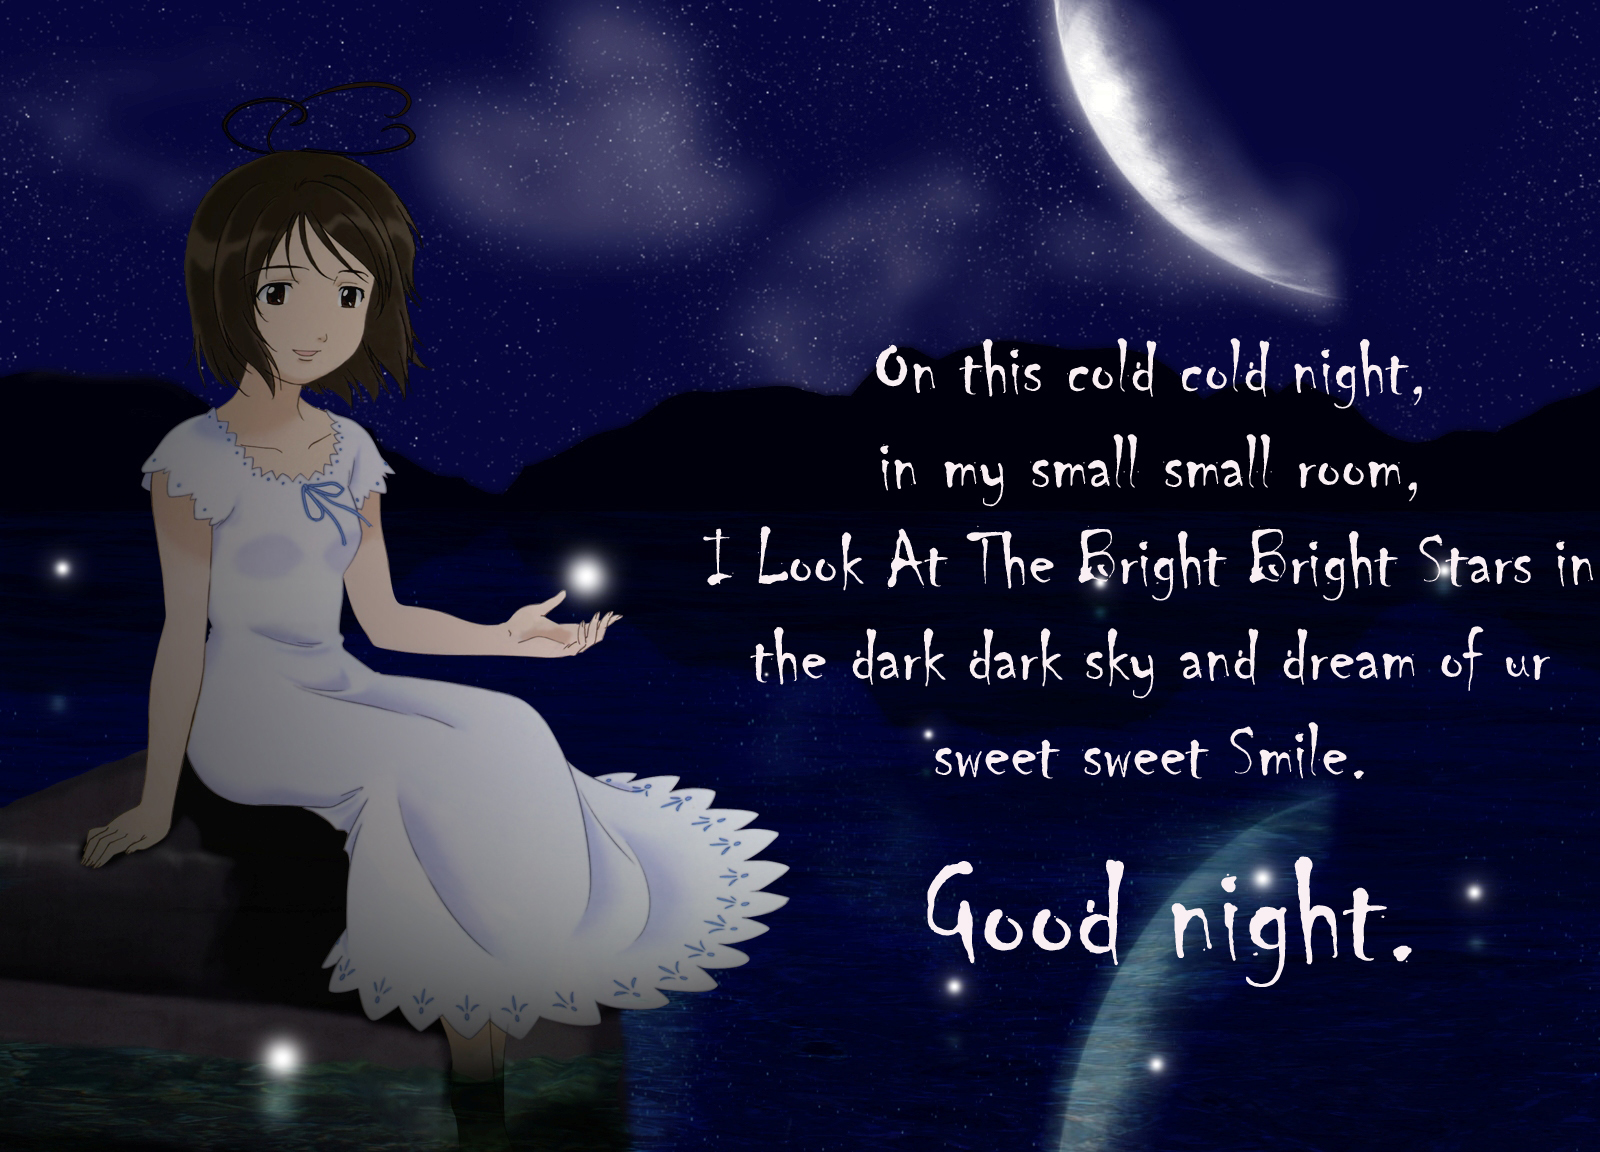 Good Night Wishes Messages Cards, SMS Images - Festival Chaska